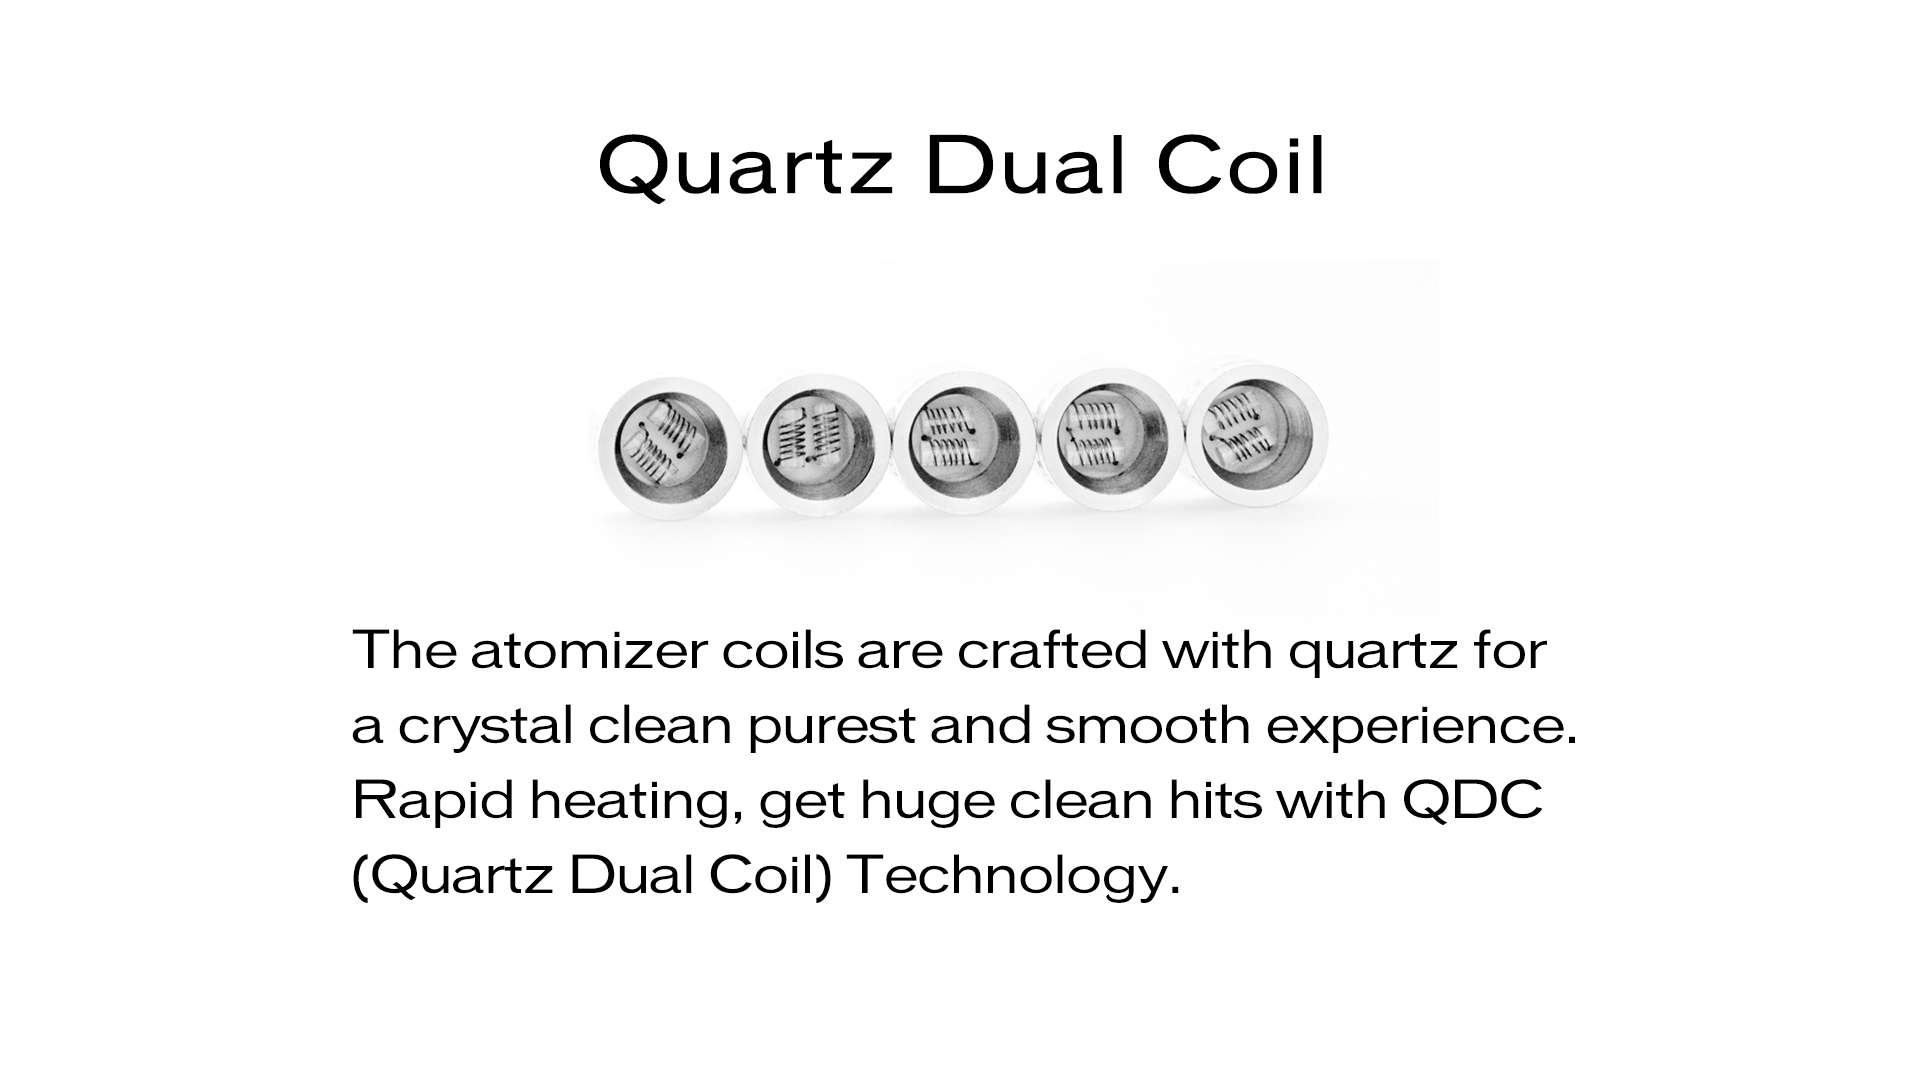 Yocan NYX Coils are crafted with quartz for a crystal clean purest and smooth experience.